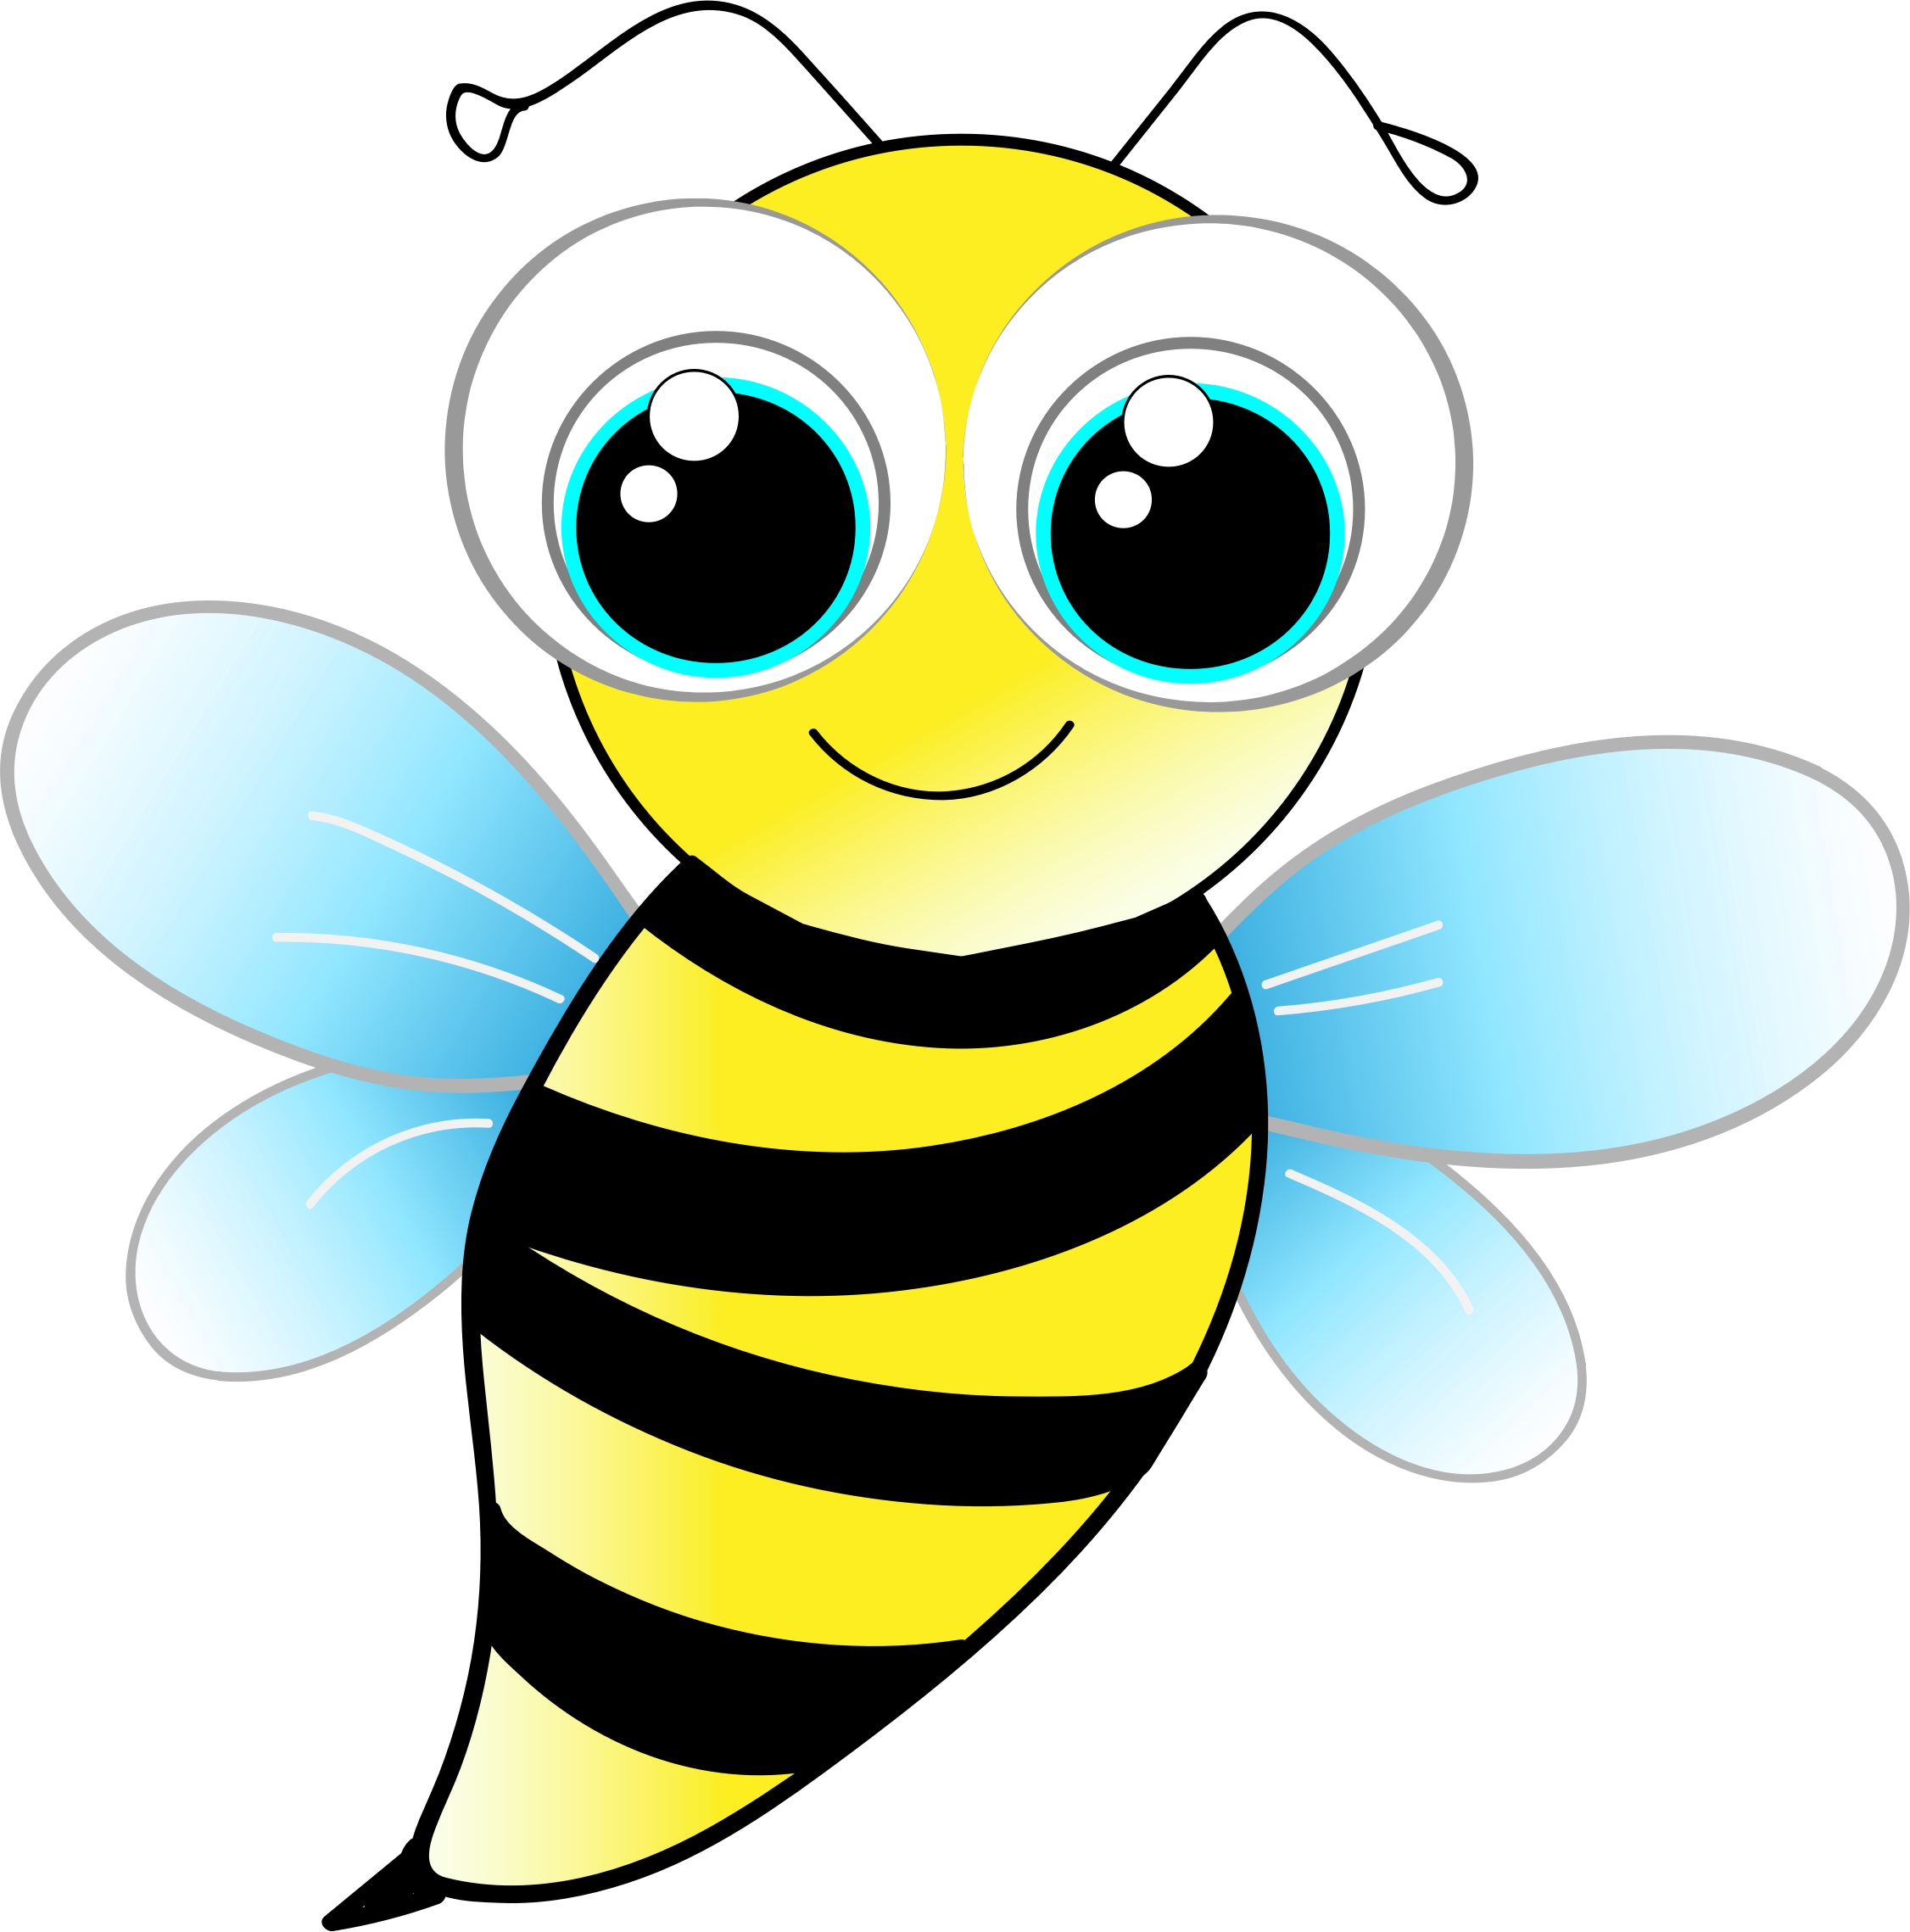 Bee by gdj from. Worm clipart friendly